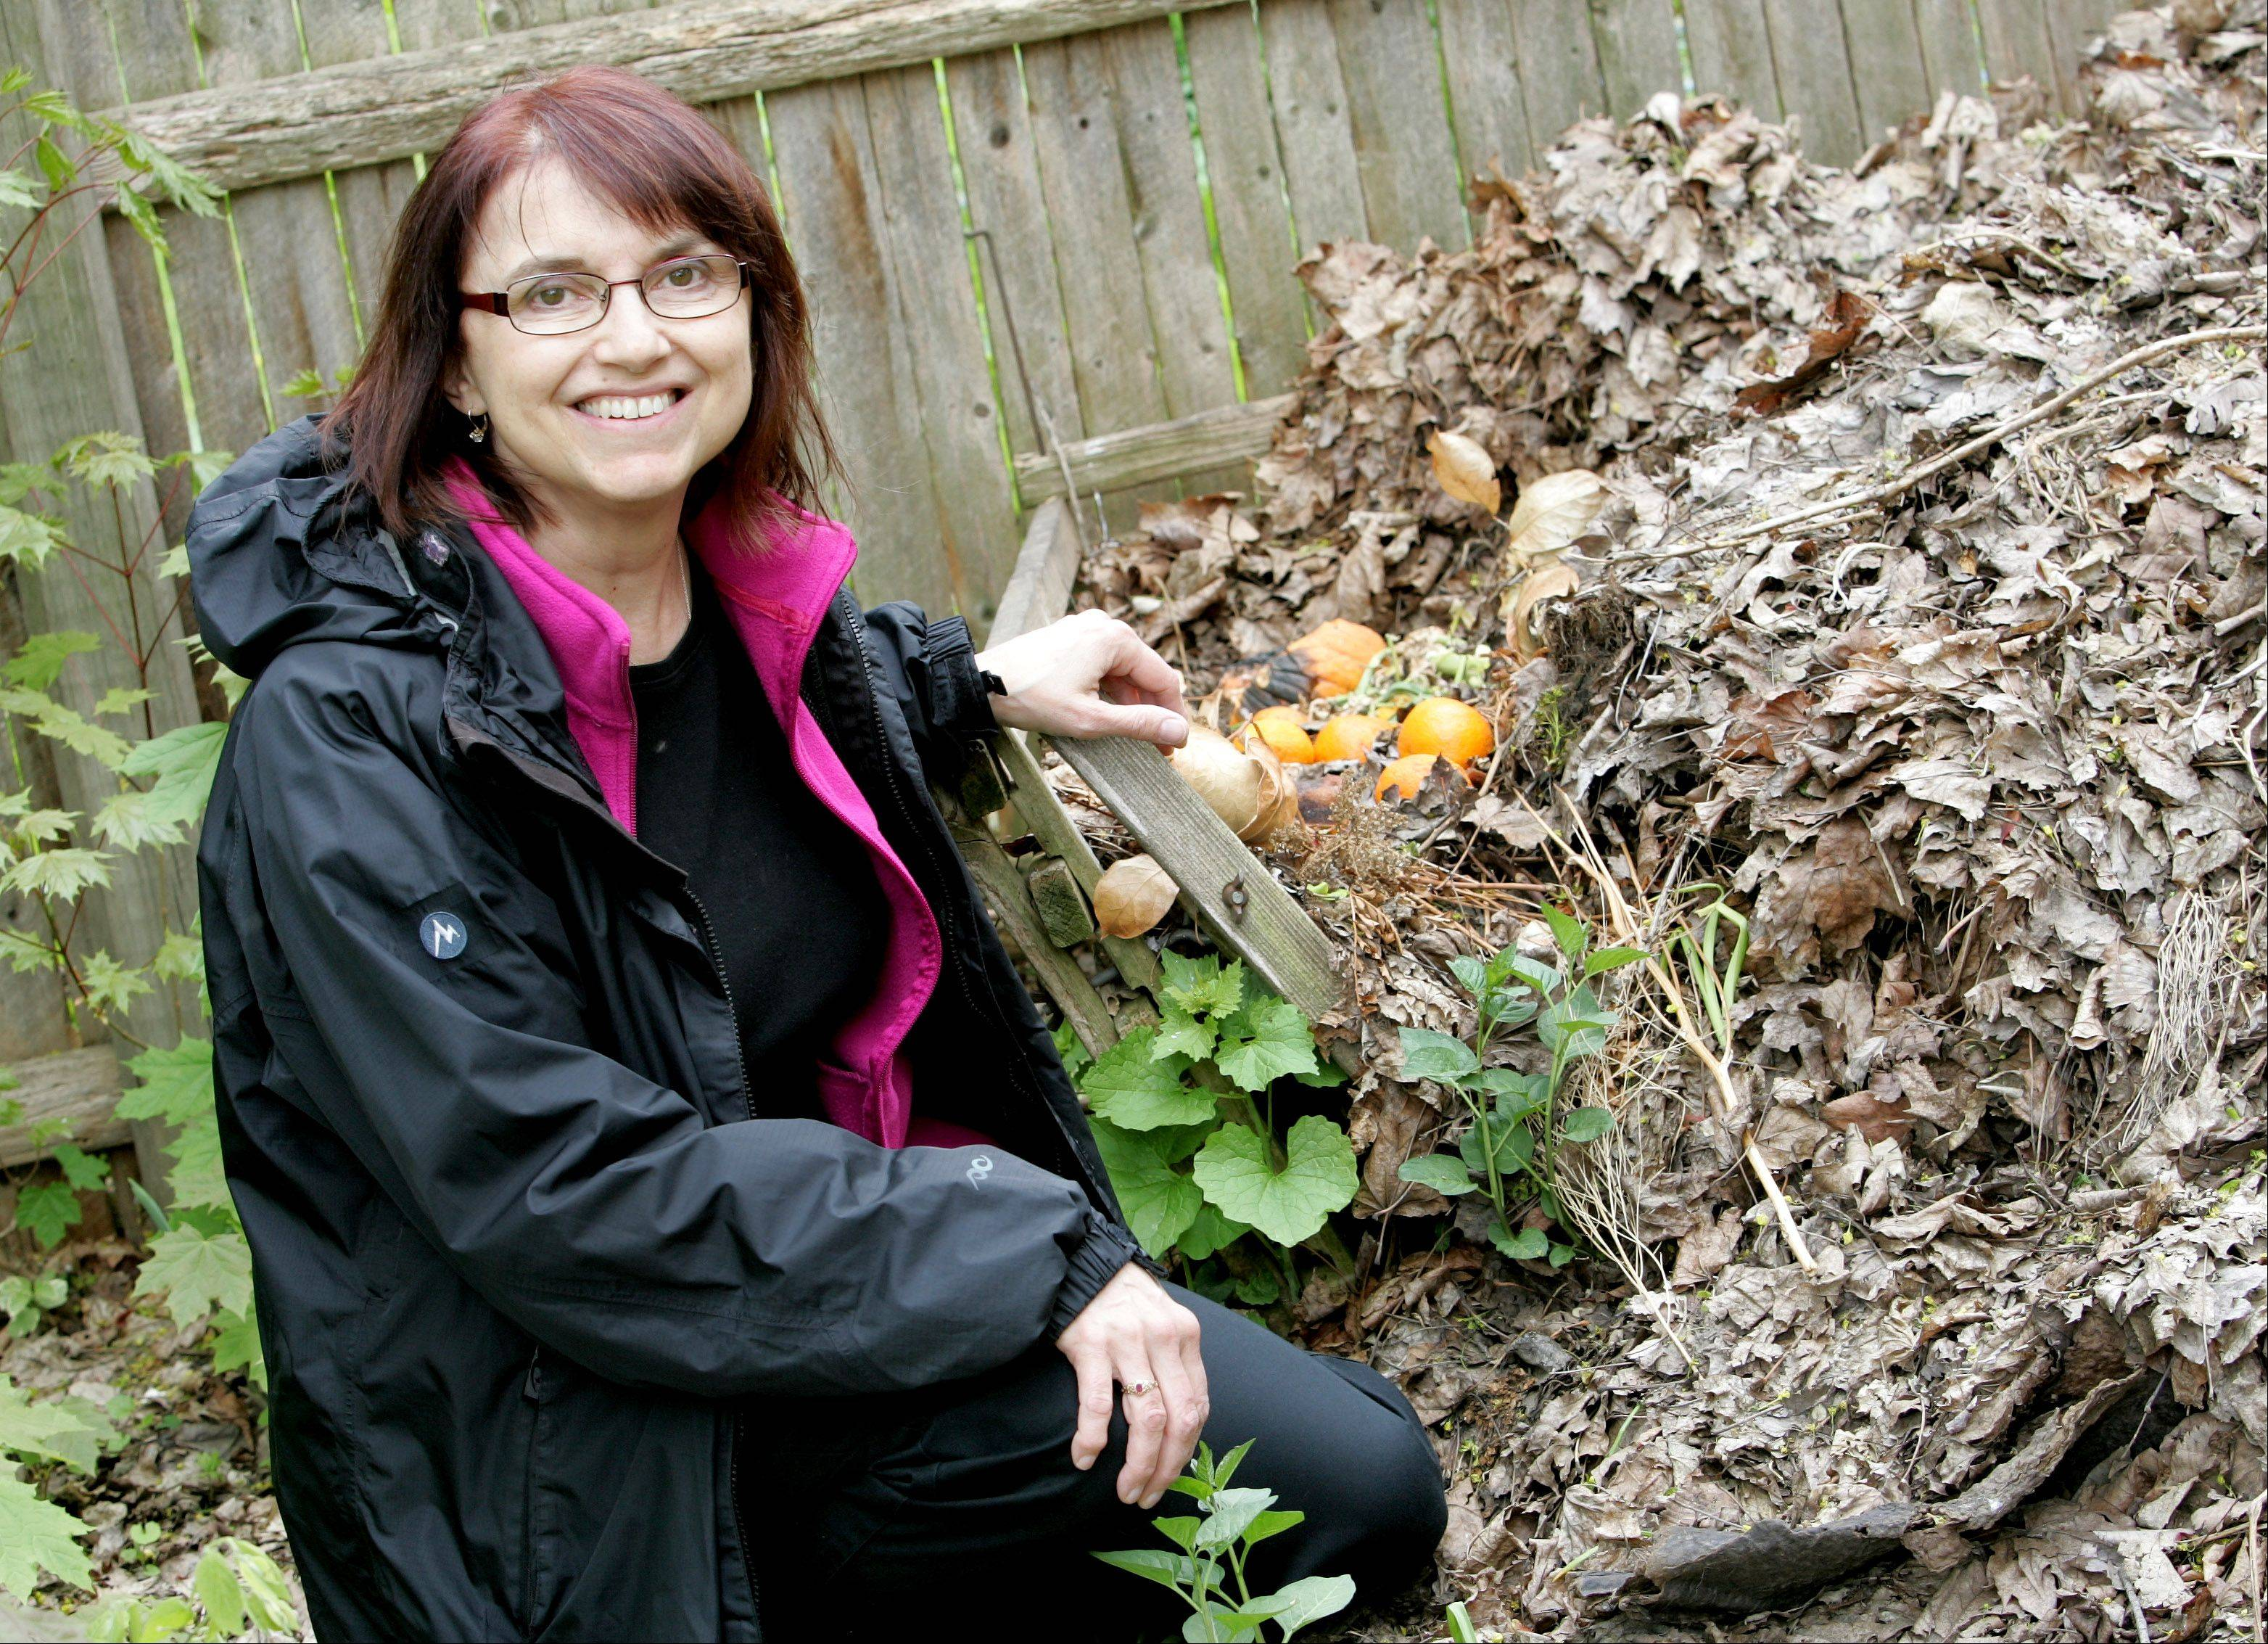 Mavis Bates of Aurora, who started the city's annual Green Fest, has a compost heap in her backyard and promotes conservation by riding her bike when she can instead of driving and cooling her home room by room with small window air conditioners instead of a large central system.